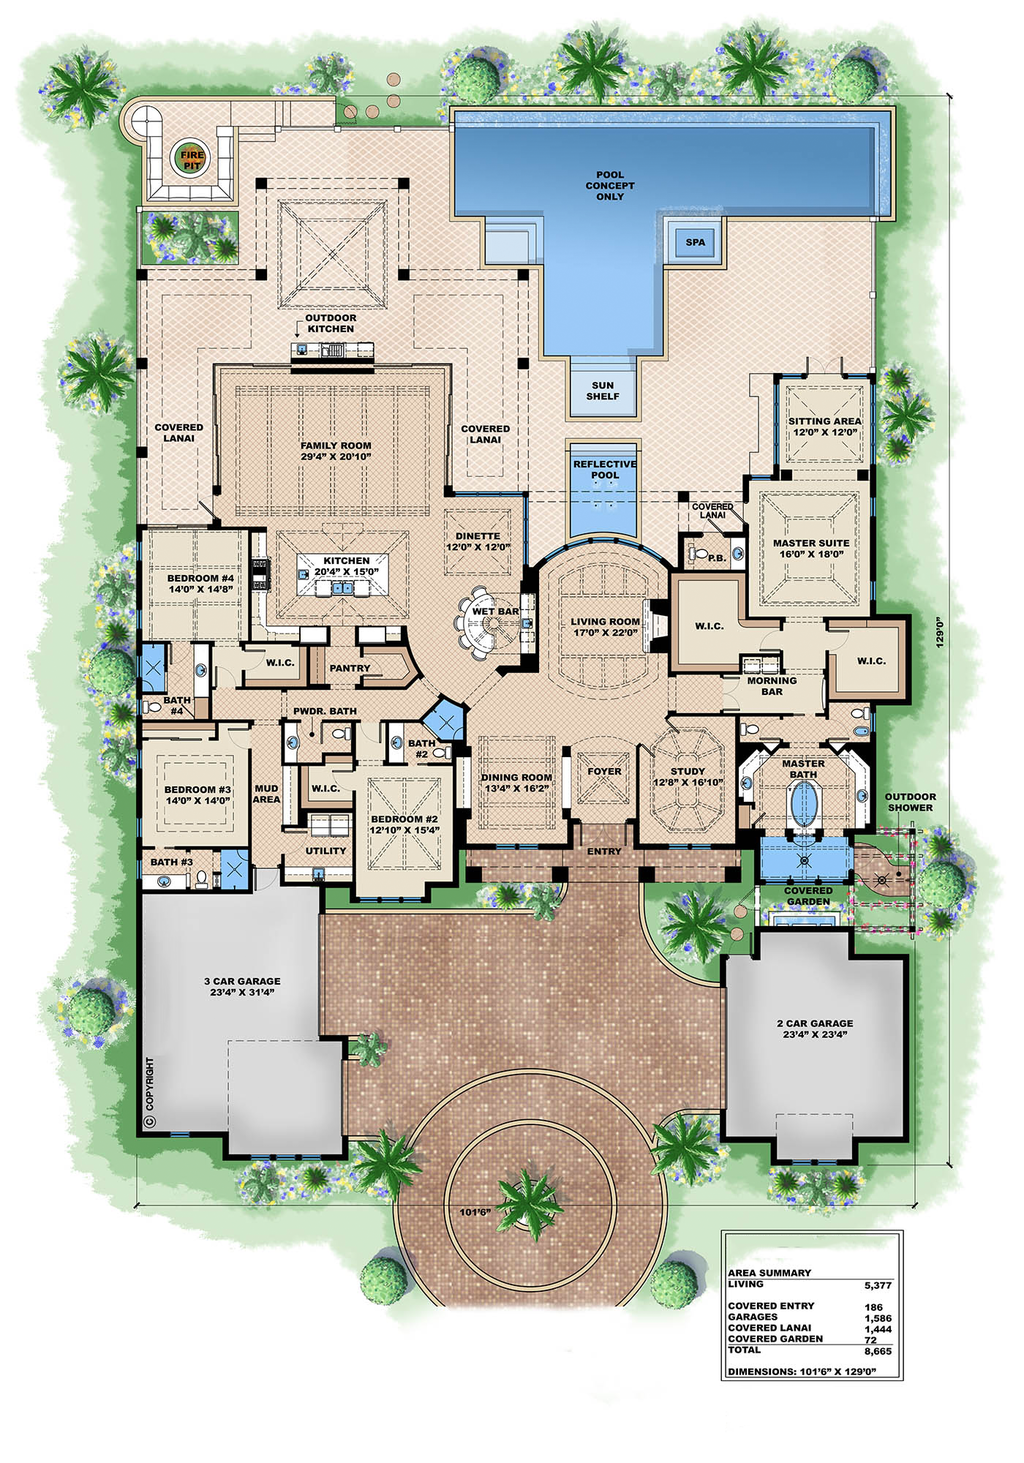 European Style House Plan 4 Beds 4 75 Baths 5377 Sq Ft Plan 27 455 House Plans Dream House Plans Floor Plans